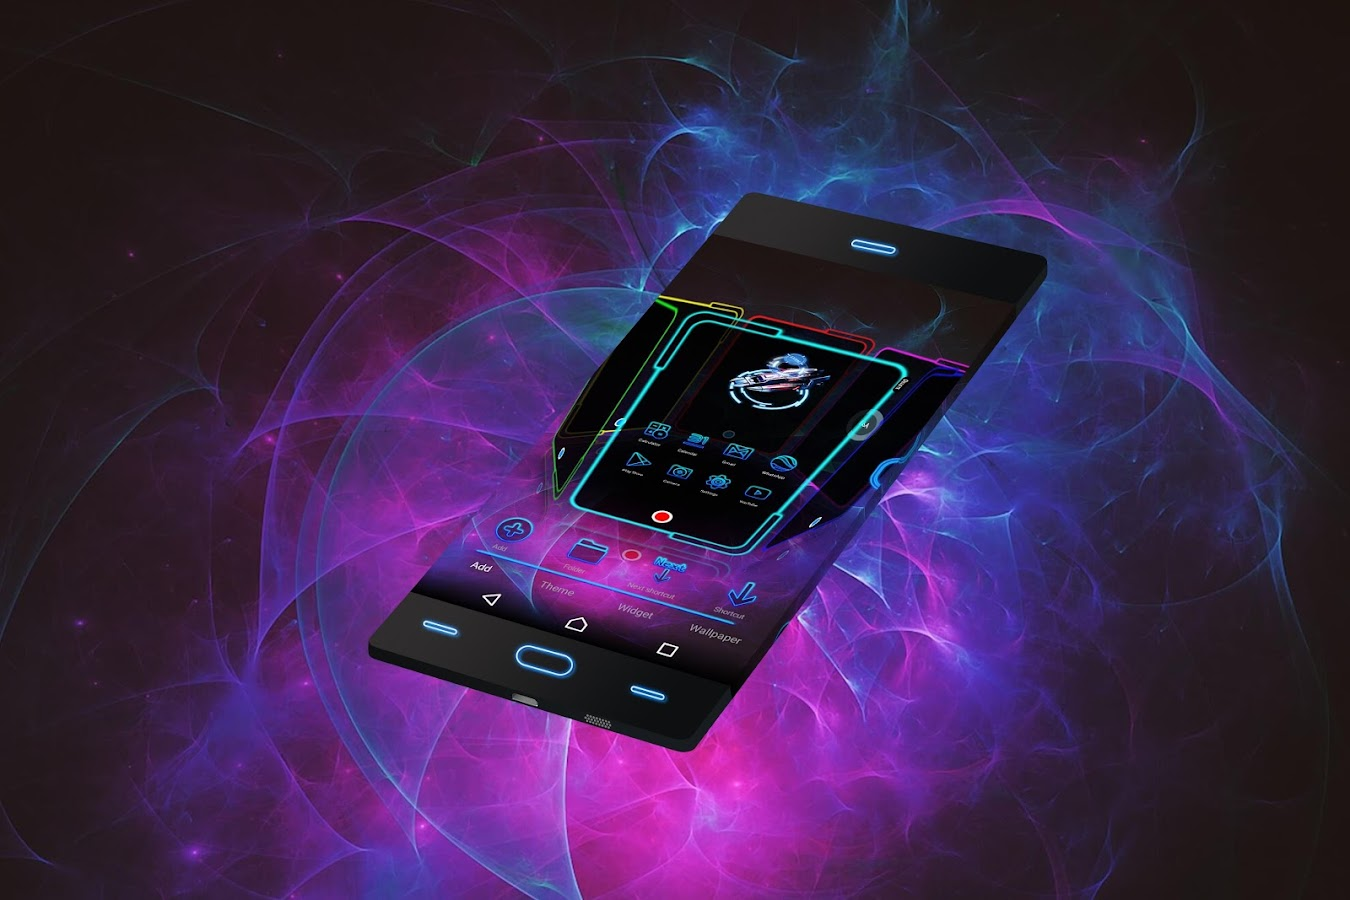 Phone Download Free Themes For Android Phones 3d themes for android apps on google play screenshot